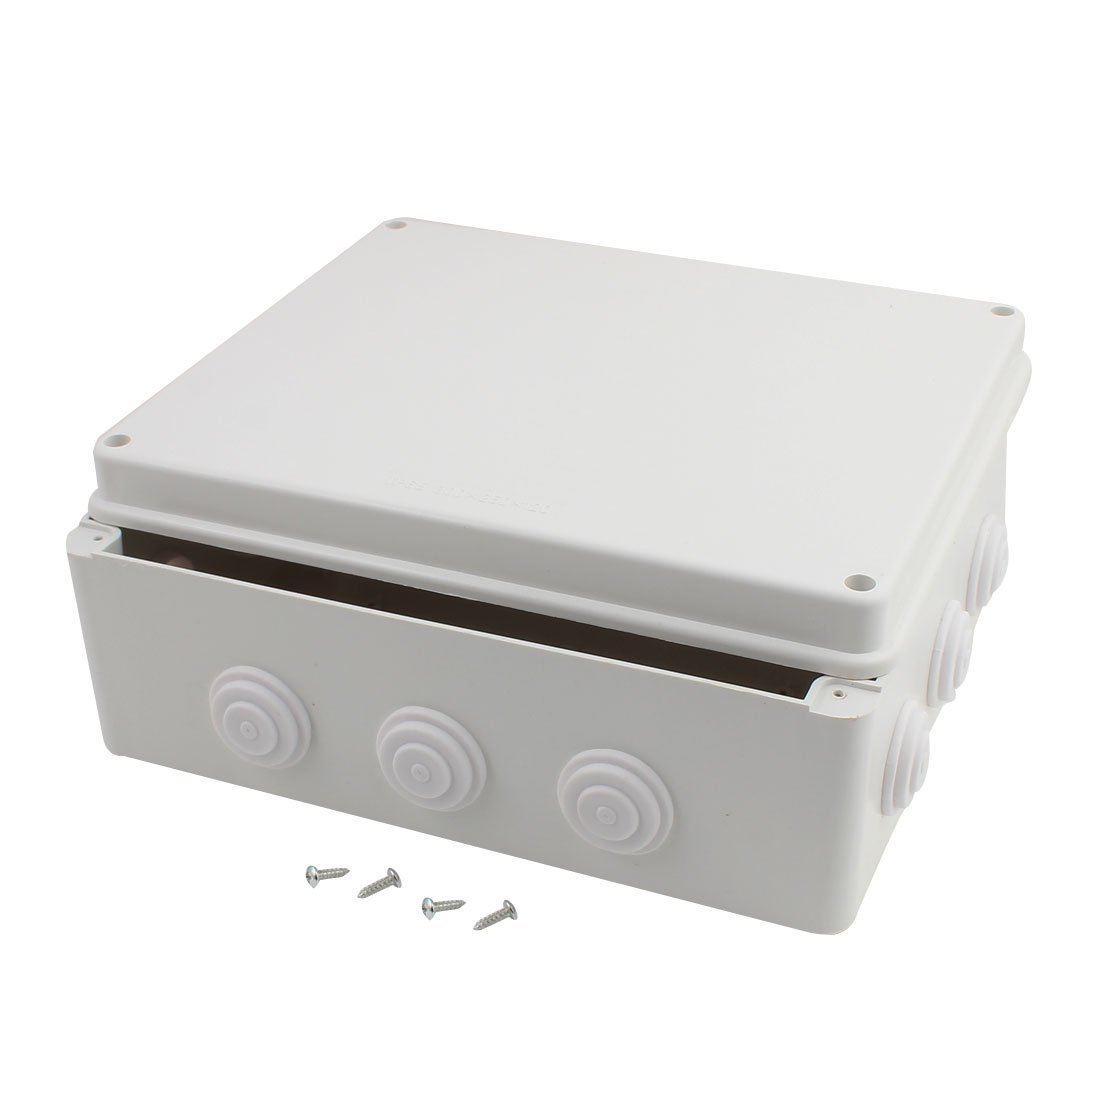 Purple-fox Junction Box L300mm x W250 x H120mm Dustproof IP65 Universal Electric Project DIY Case Enclosure for Joining Wires Inside (300 250 120)